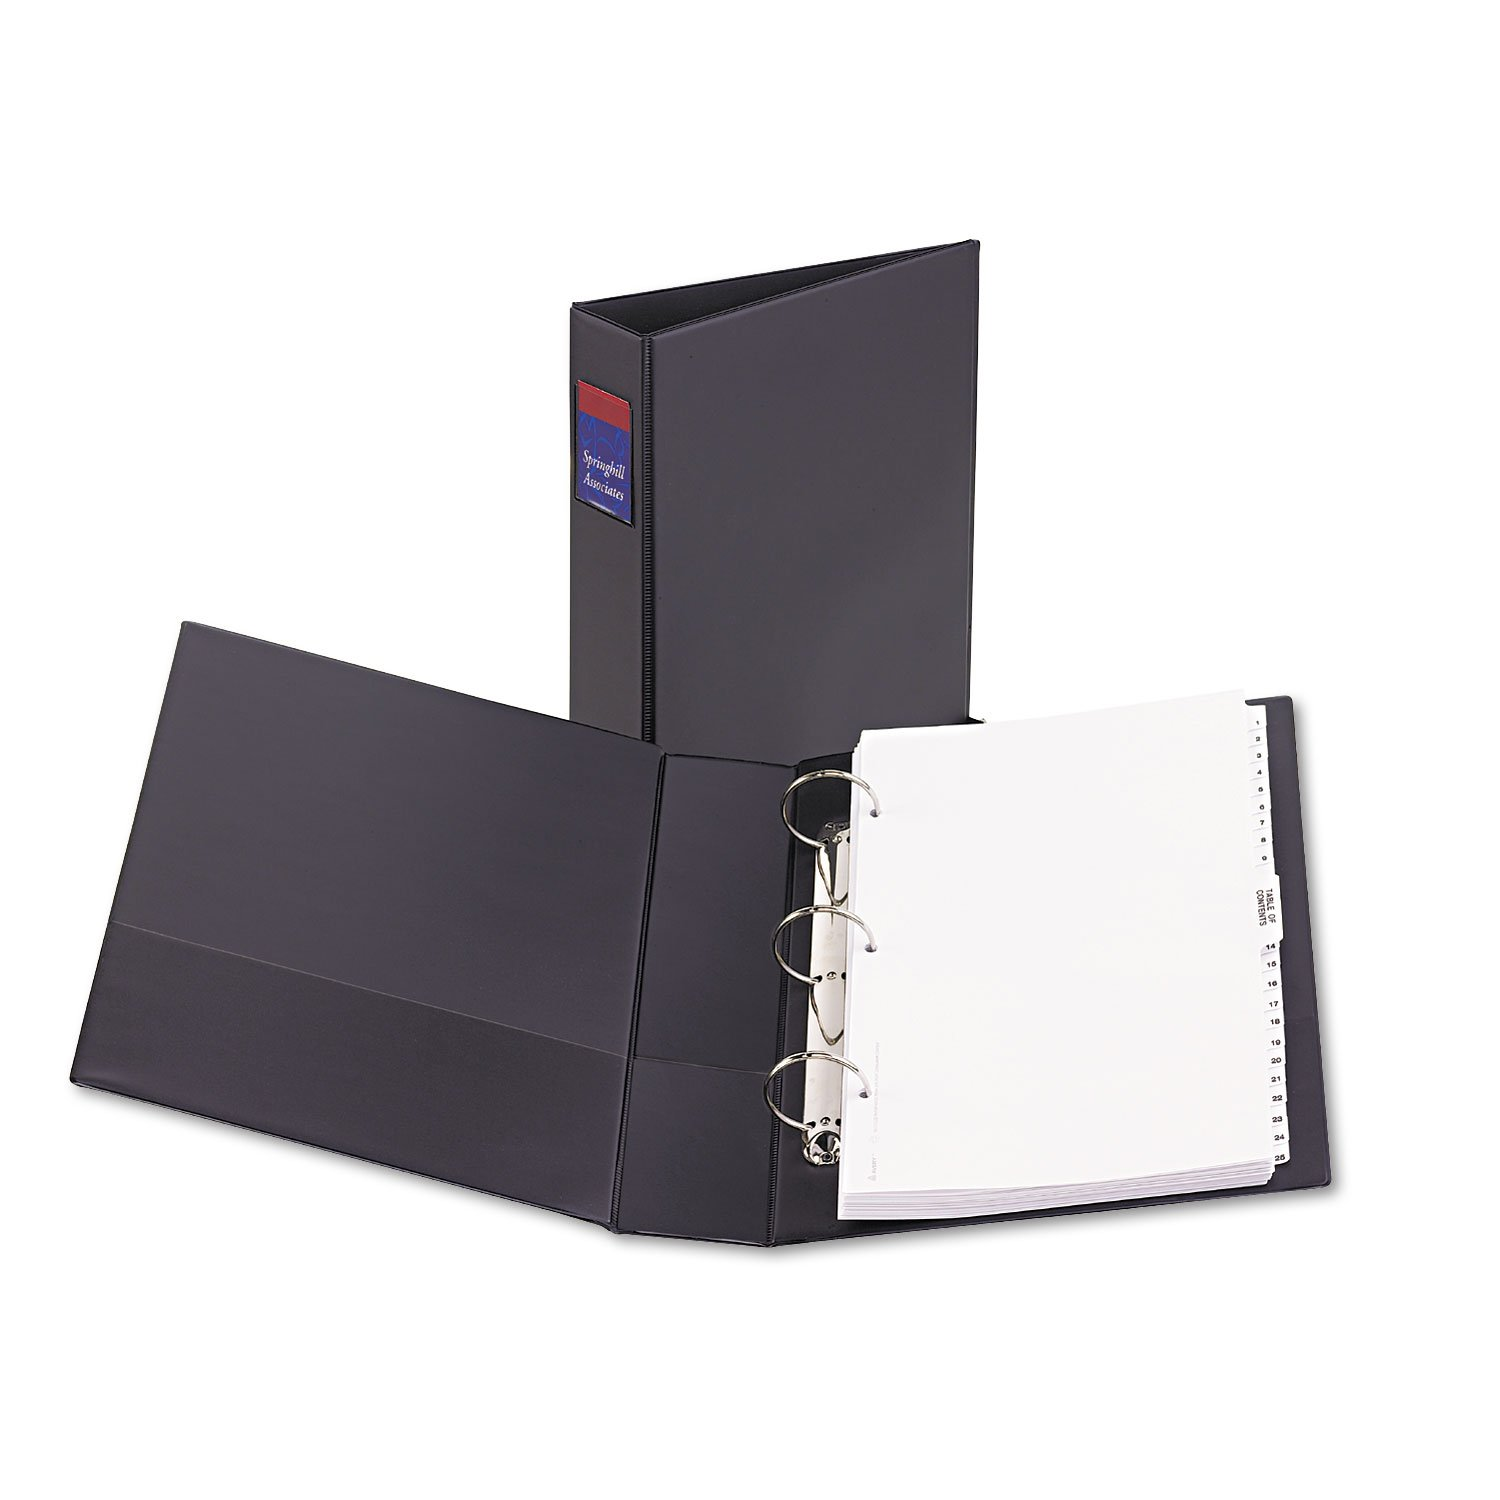 AVE06401 - Avery Durable 3-ring Legal-size Binders by Avery (Image #1)